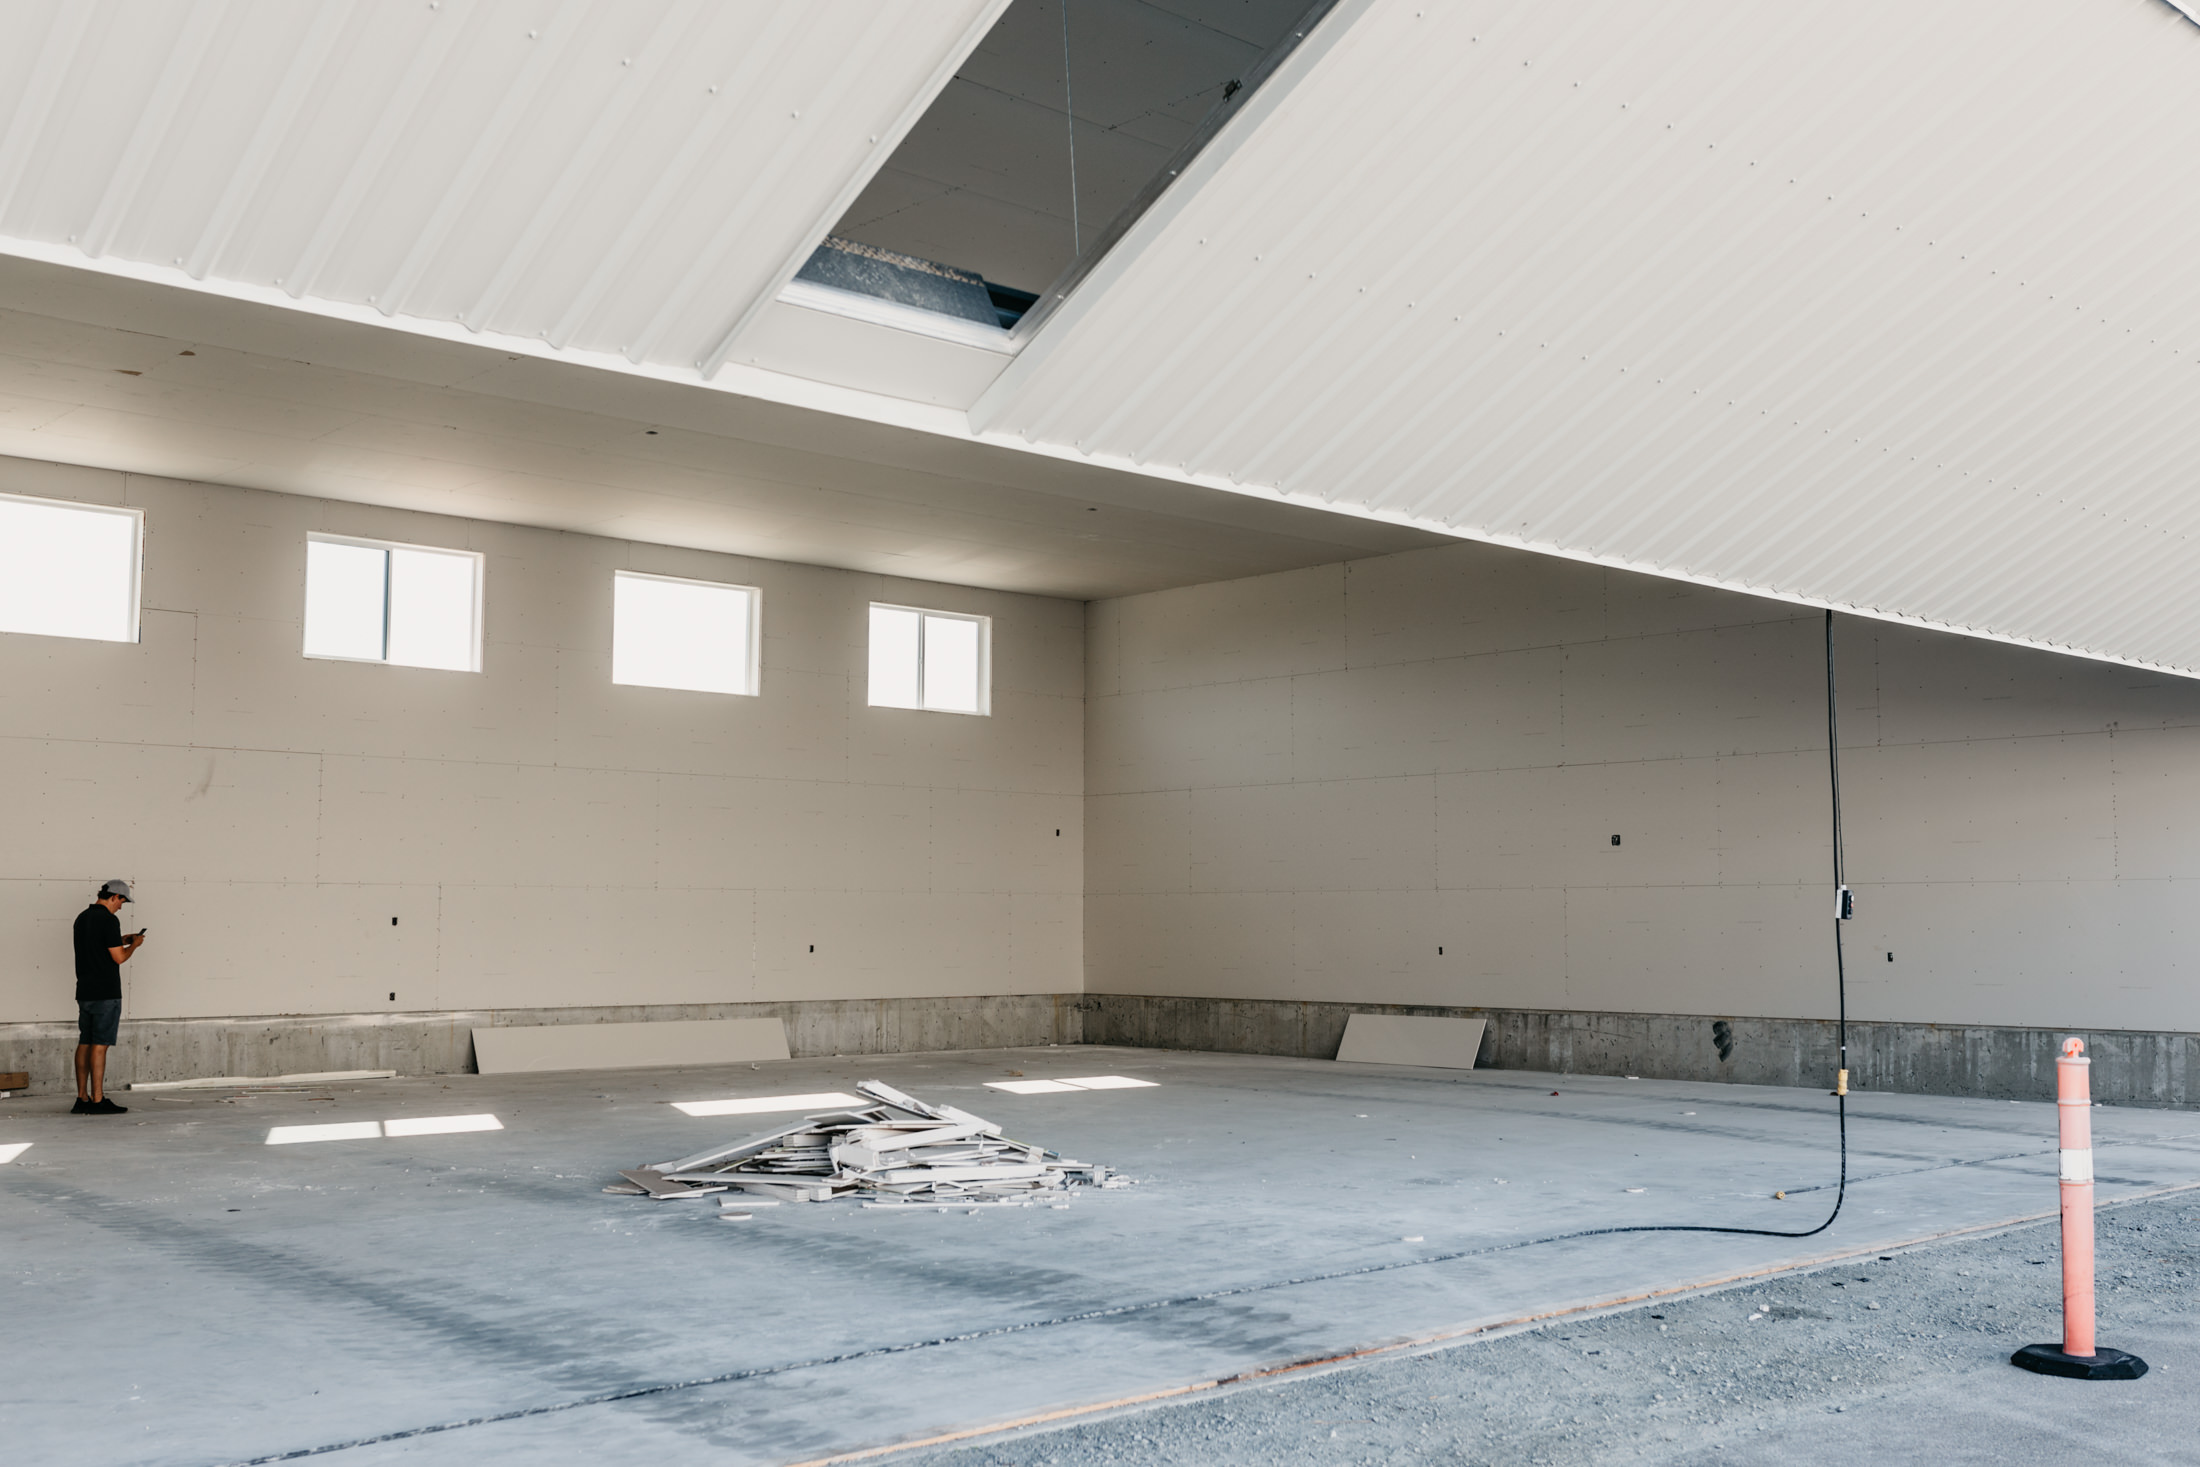 Pitt Meadows Airpark, MacLean Bros. Drywall